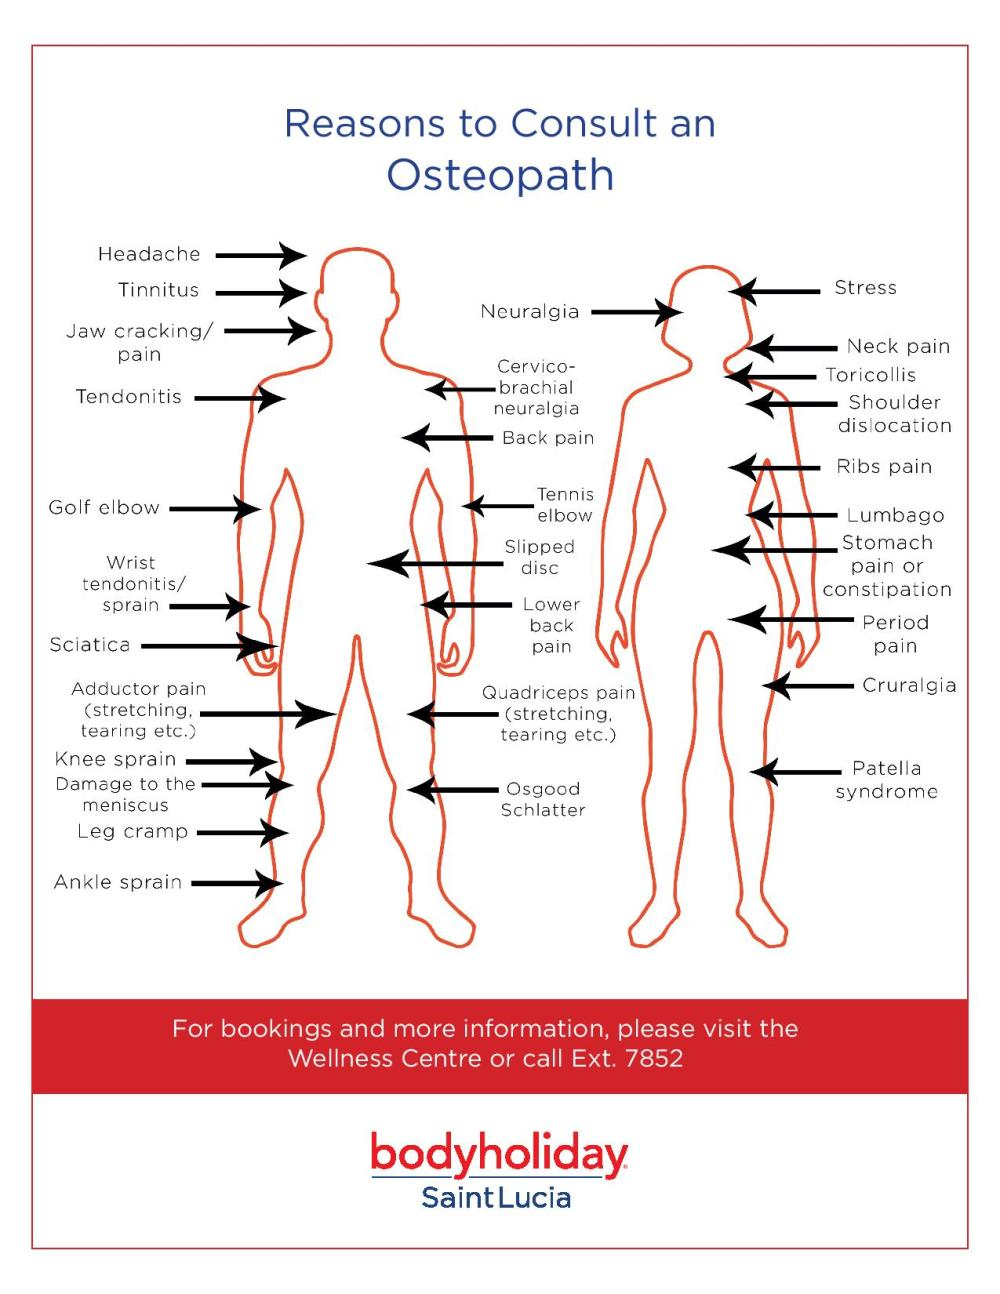 medium resolution of osteopath chart and reasons to visit them at bodyholiday